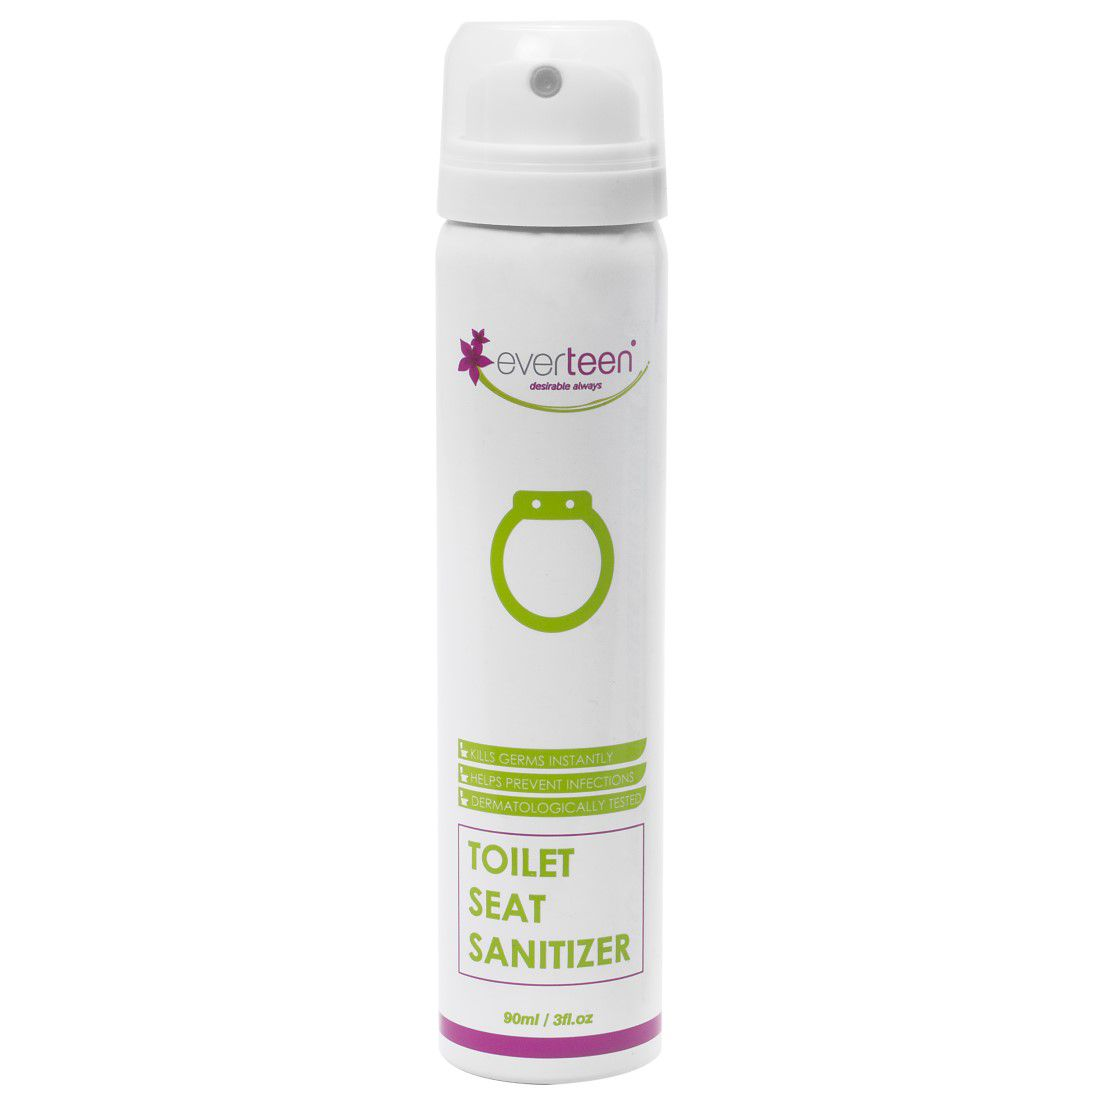 Everteen Instant Toilet Seat Sanitizer Toilet Cleaner Ready to Use Liquid Floral 90